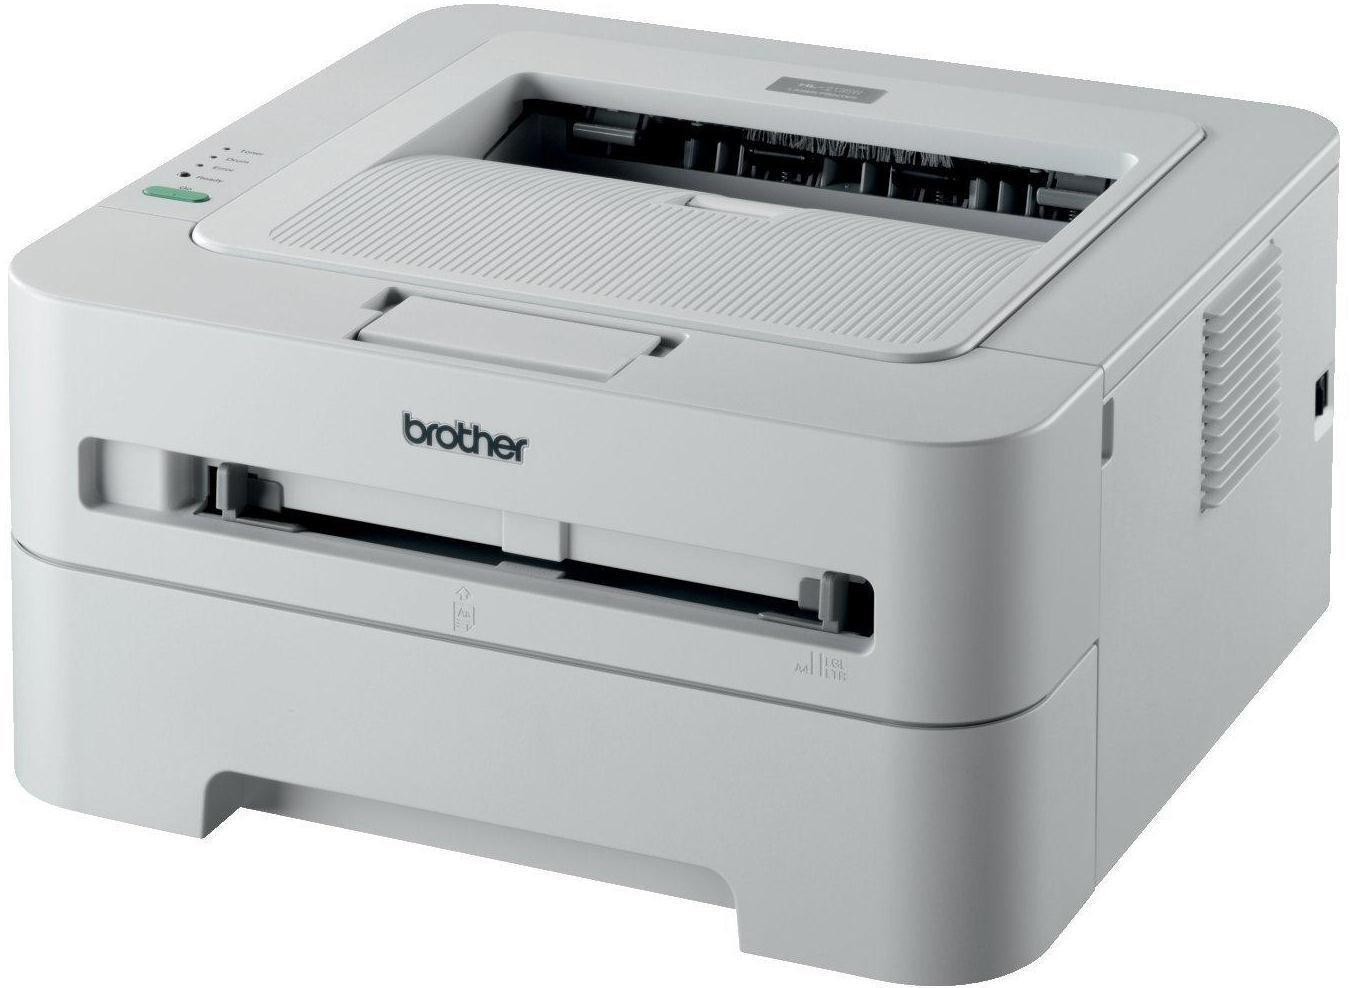 Brother Hl-2135W Compact Wireless Mono Laser Printer